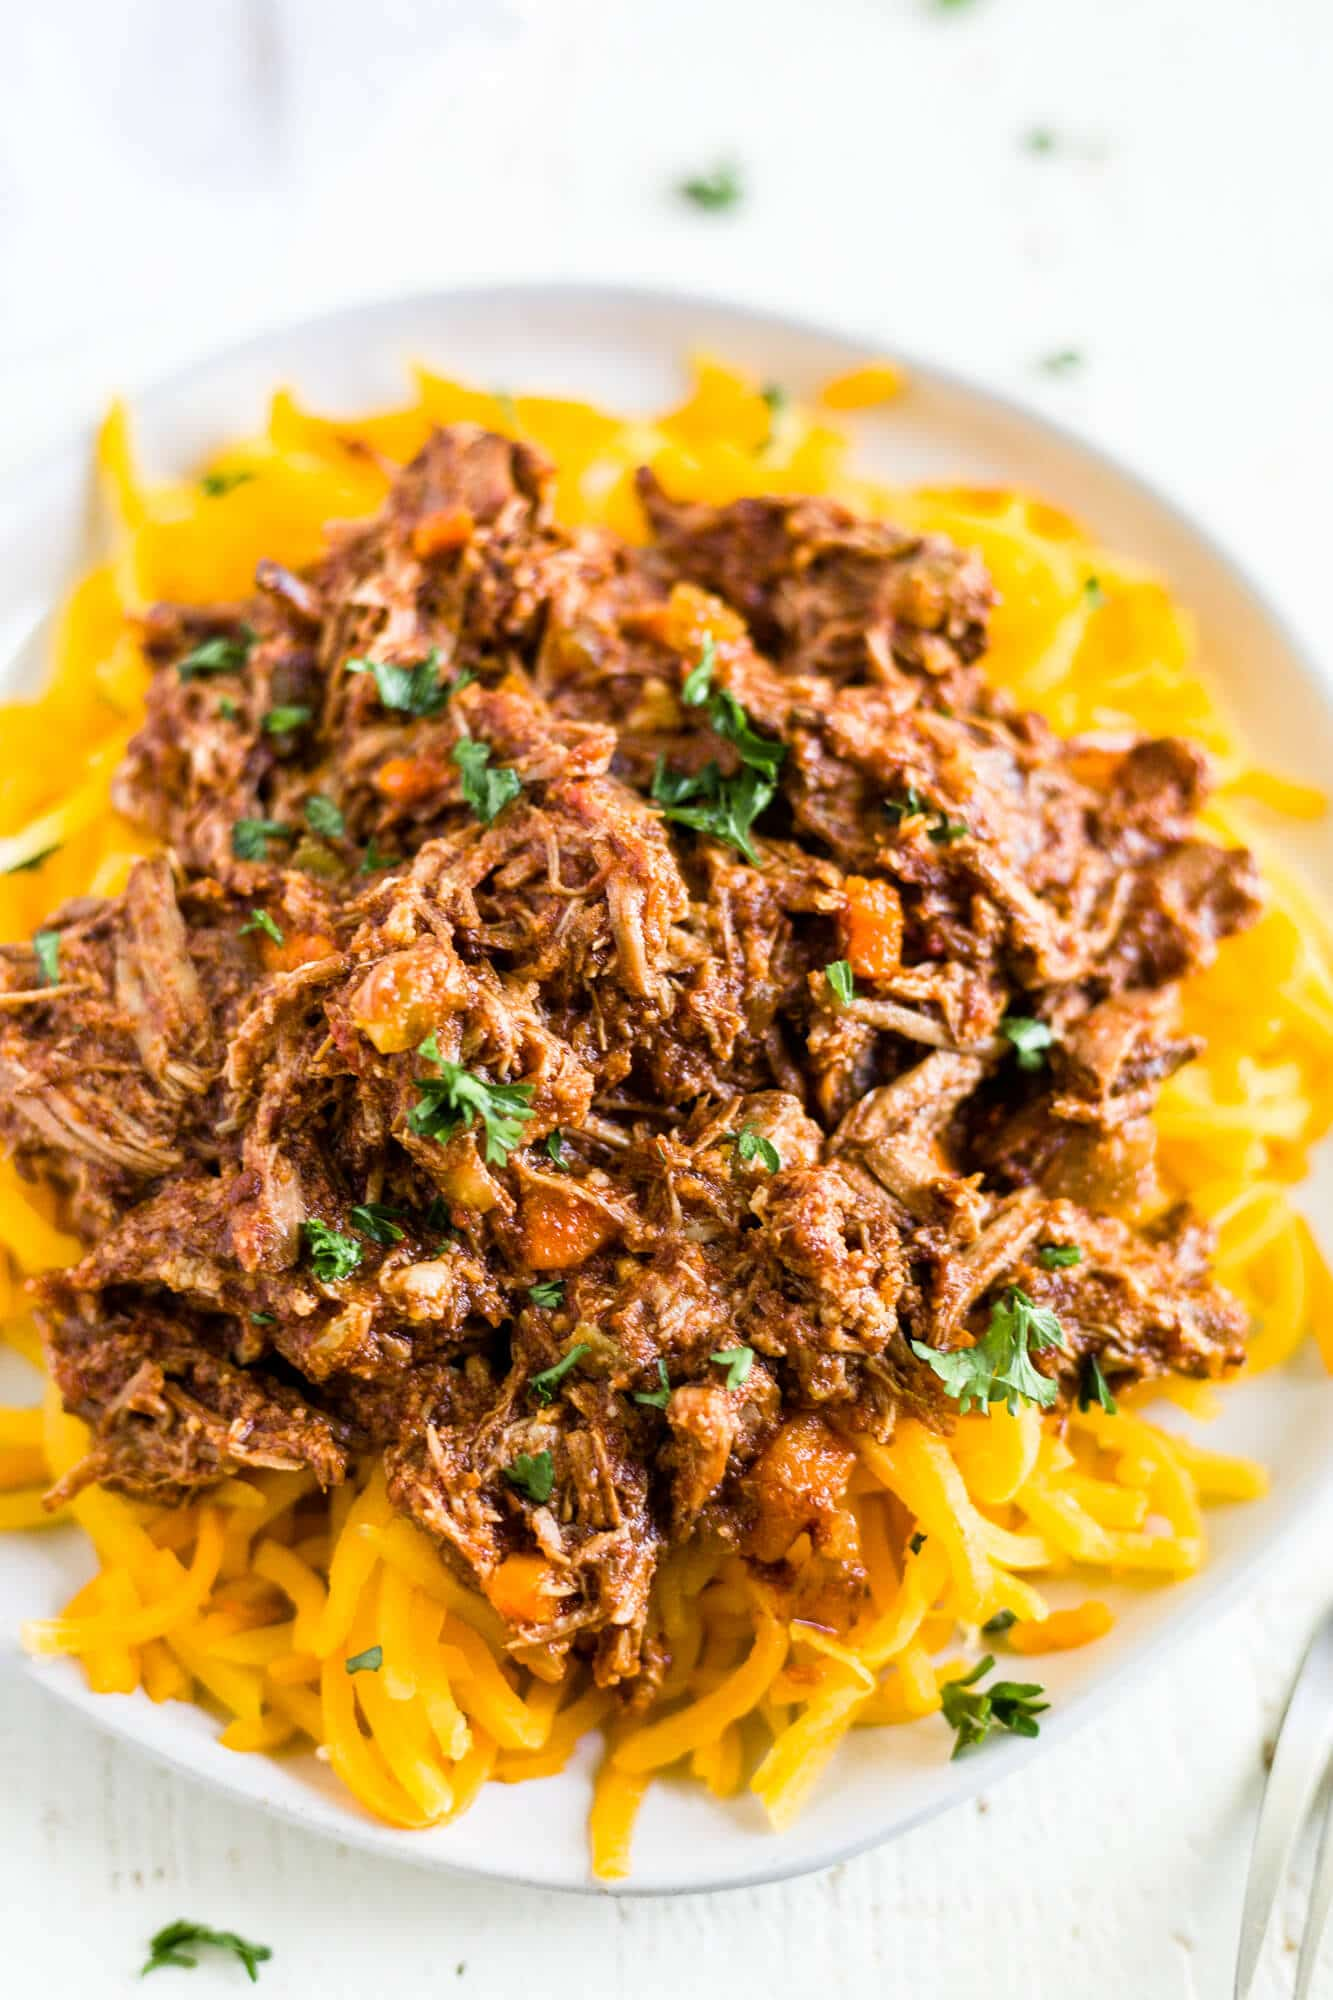 braised beef ragu on top of butternut squash noodles to make it a whole30 recipe